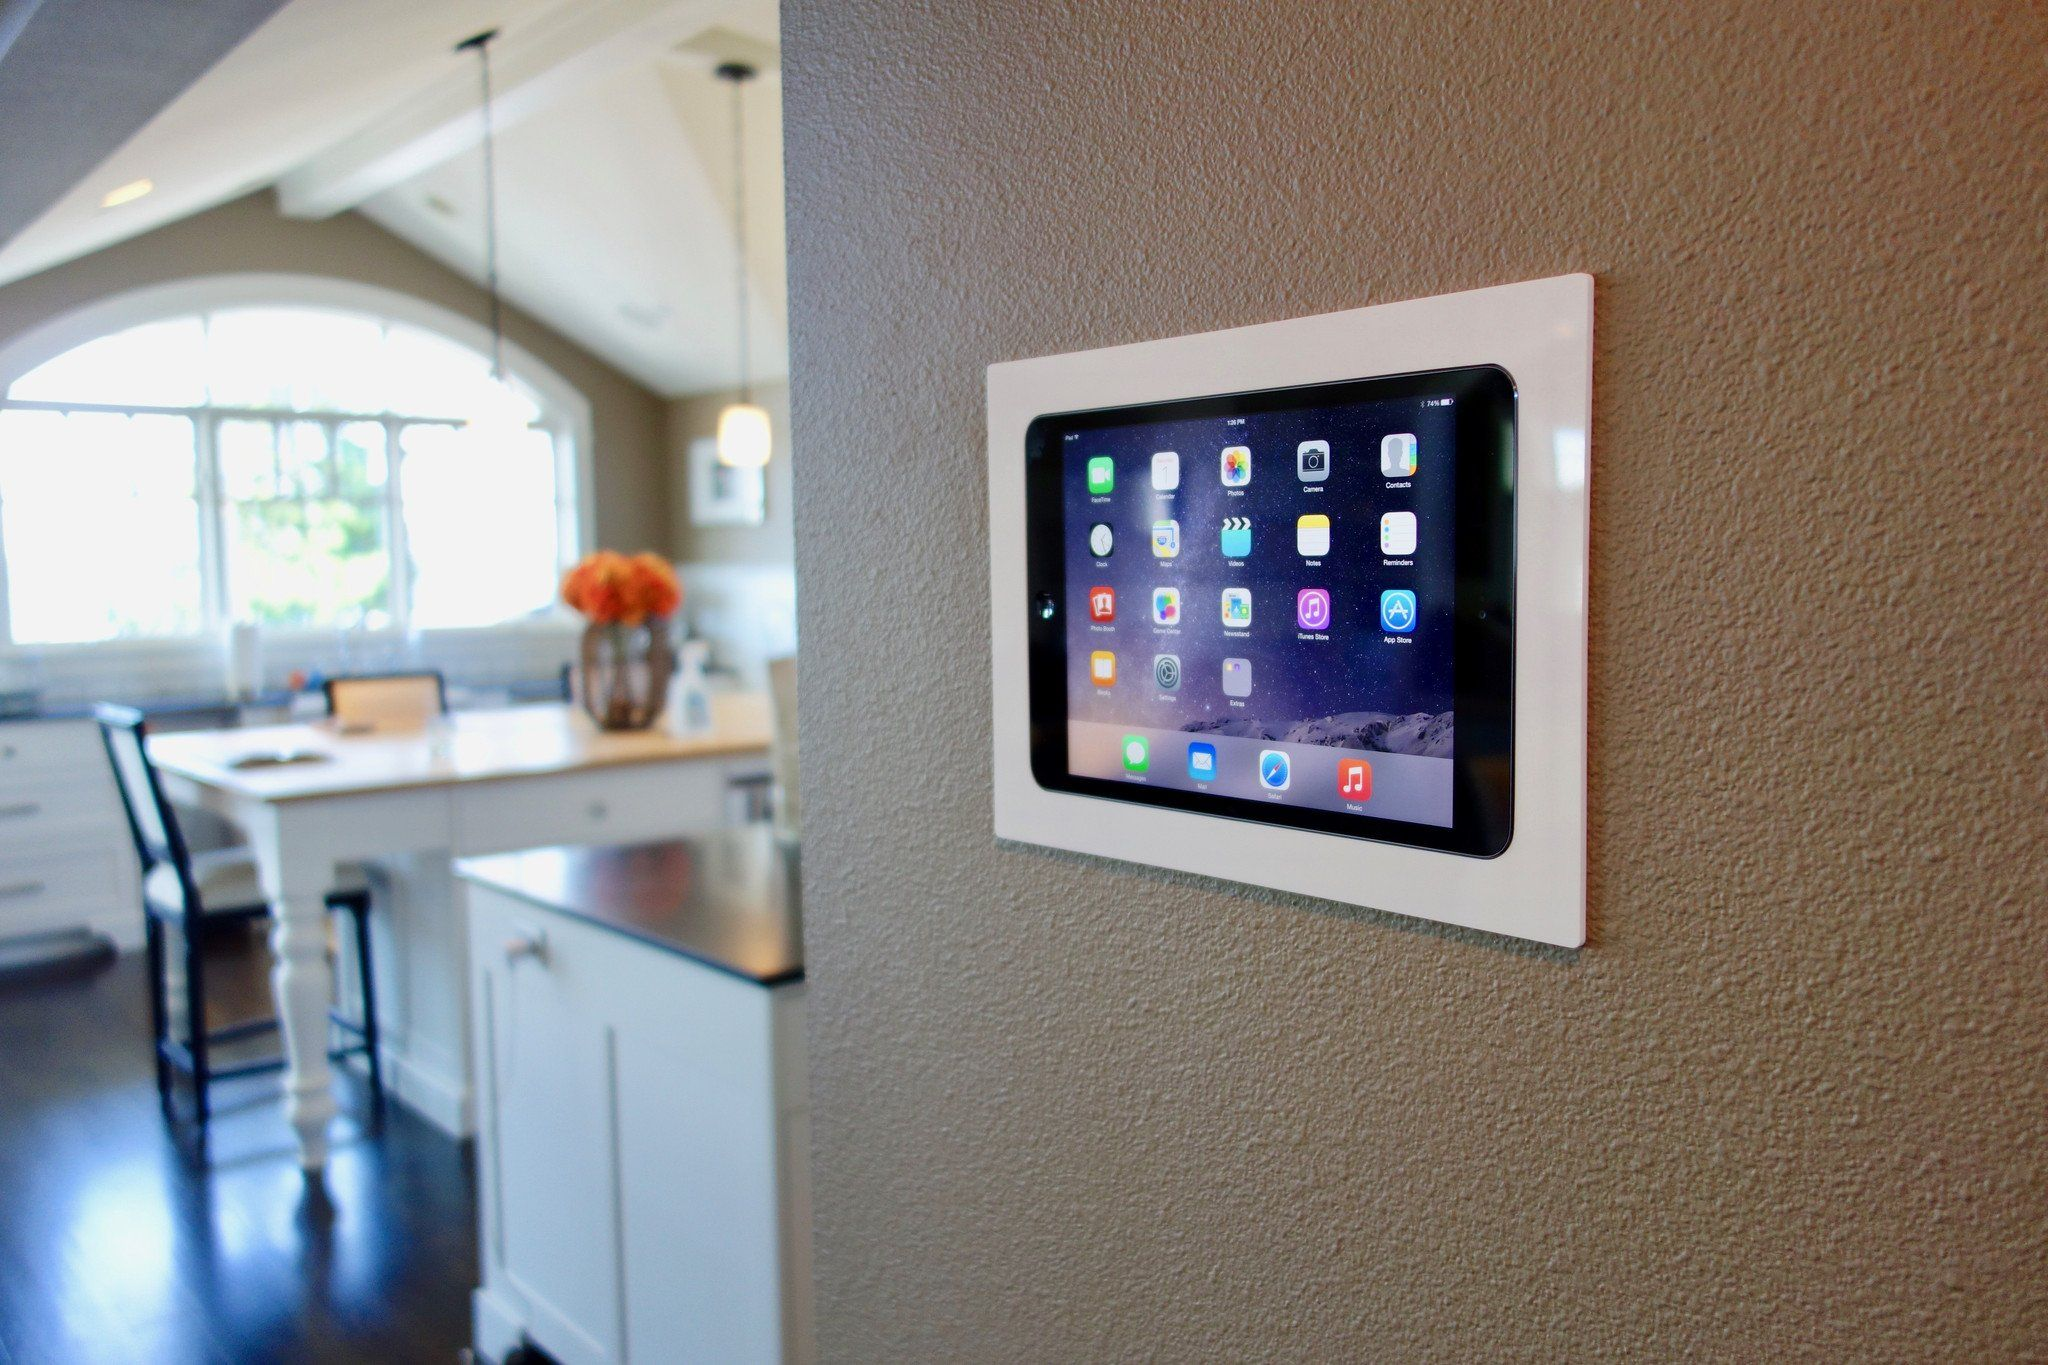 Iwalldock In Wall Tablet Mounting System Wall Tablet Ipad Wall Mount Diy Home Automation